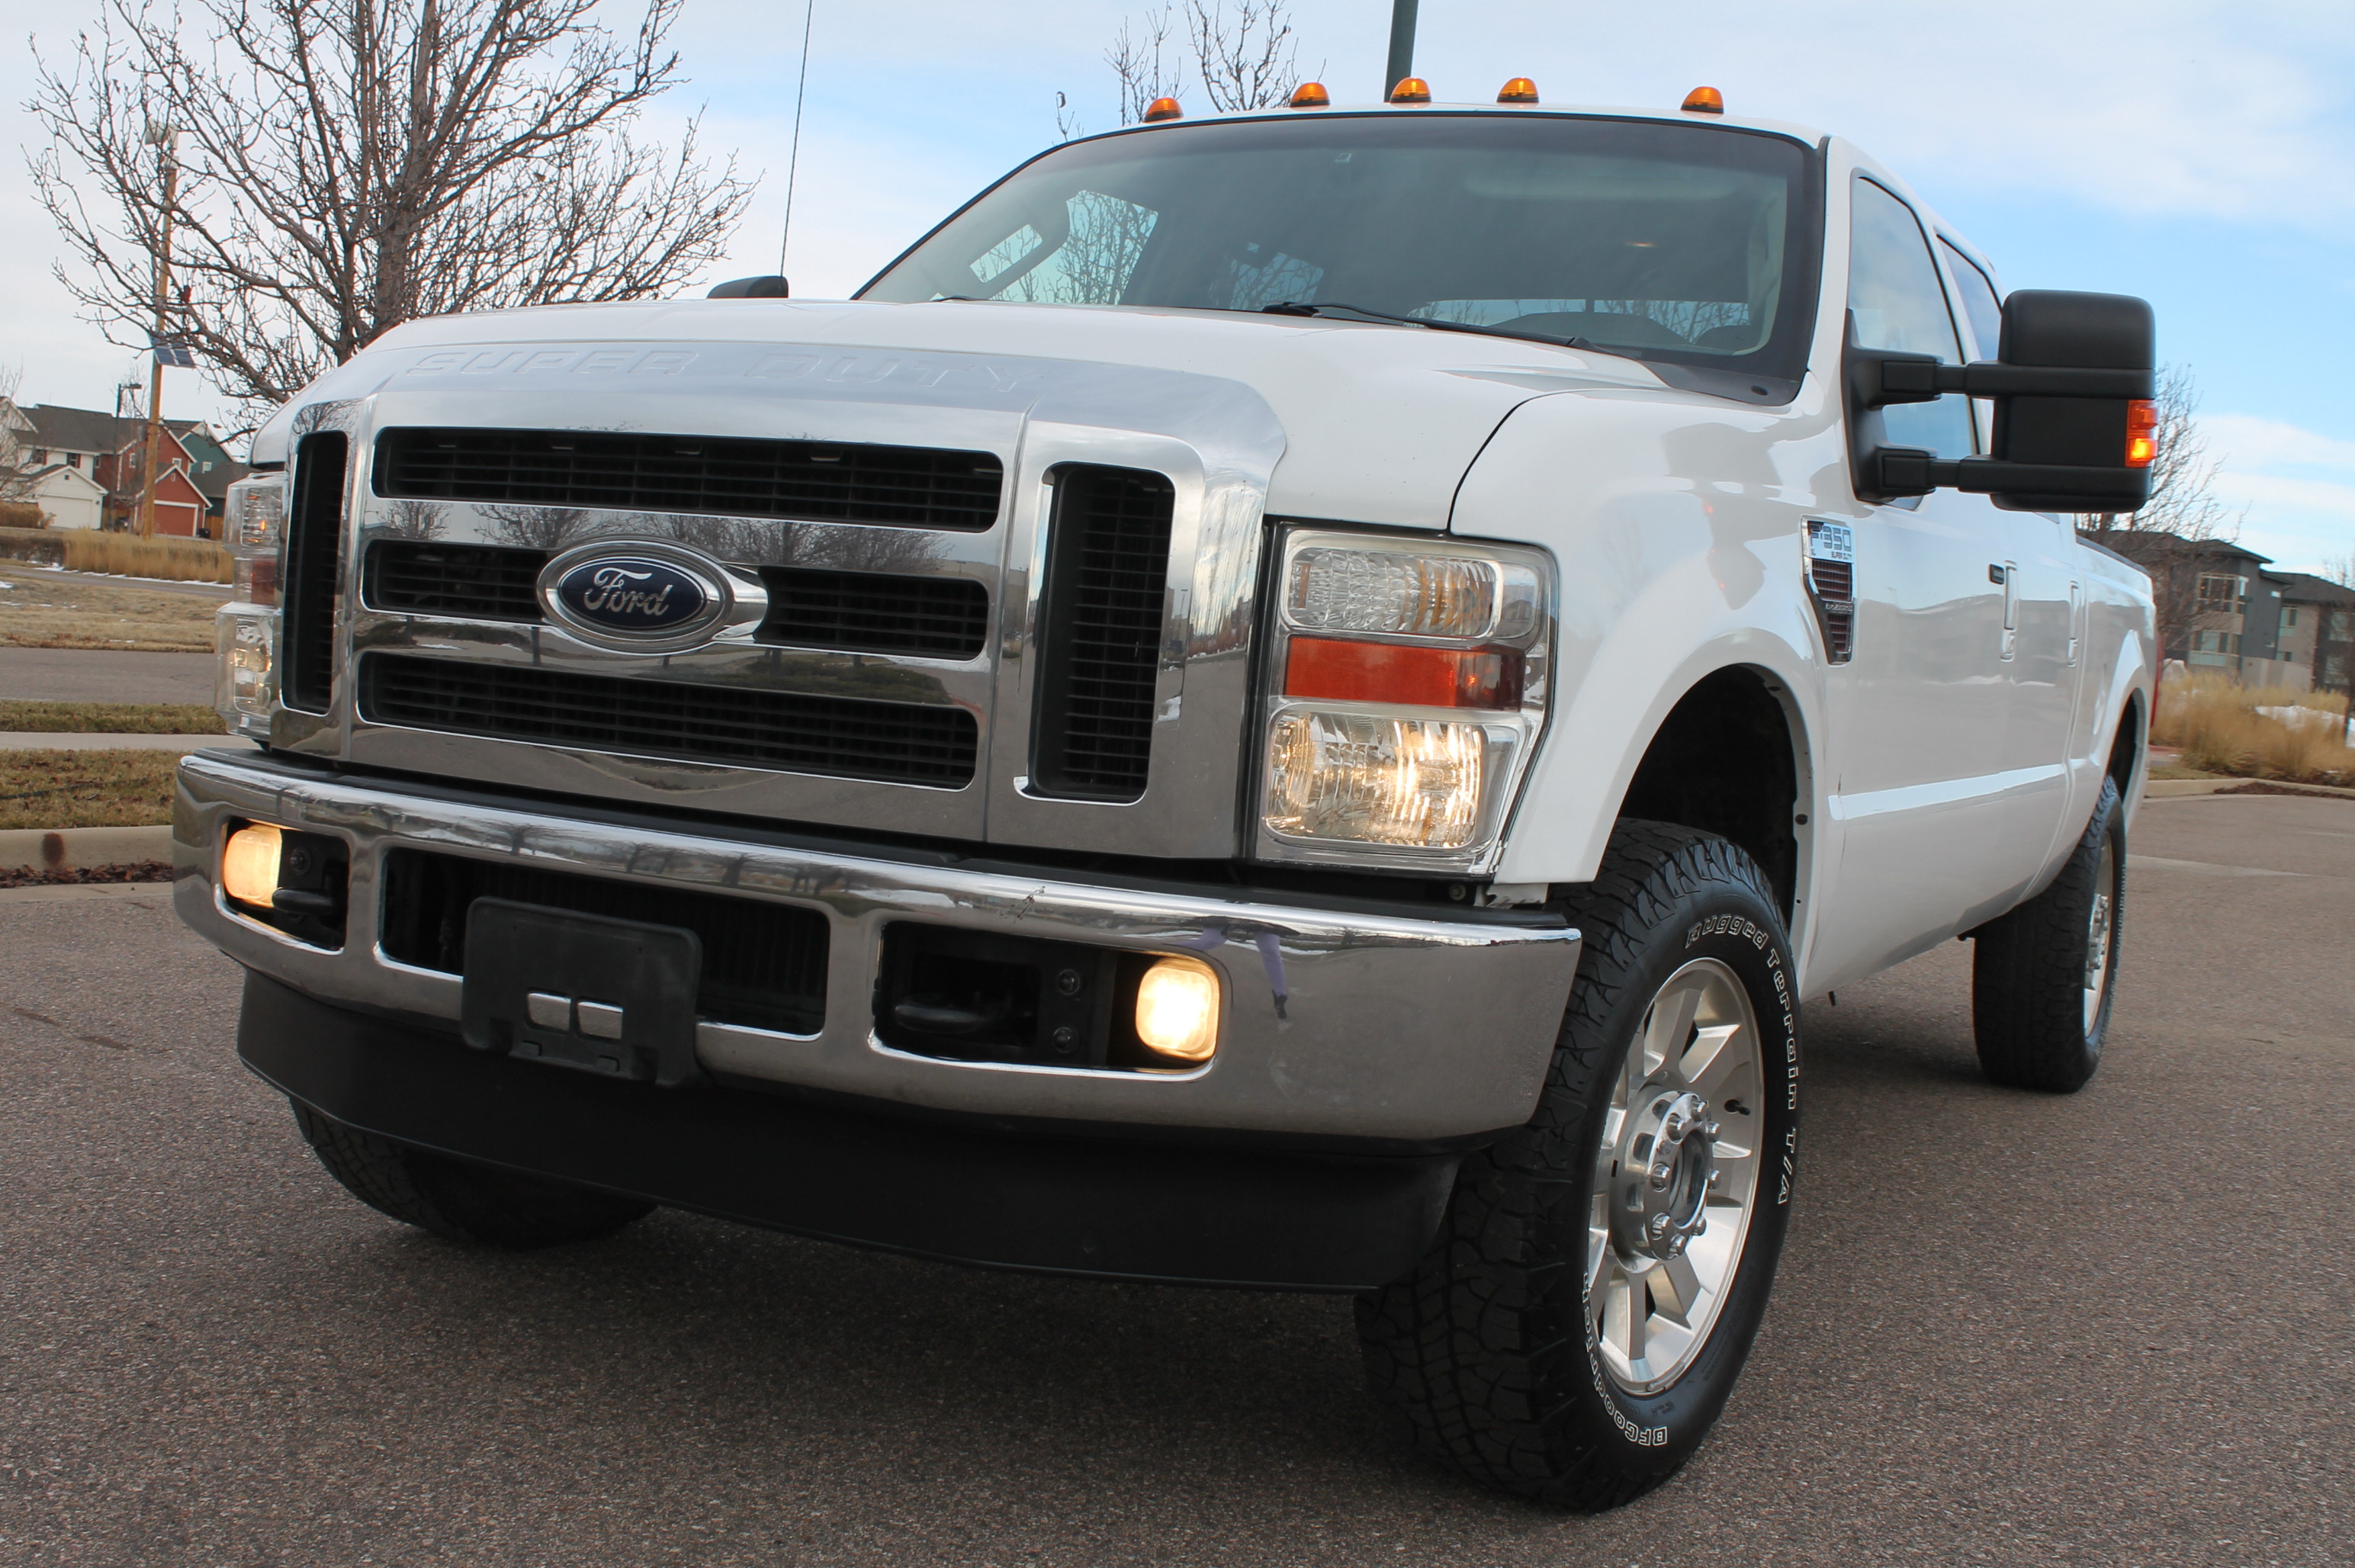 2010 ford f250 pickup truck lariat crewcab 6 4l turbo diesel 4 4 tow package sold. Black Bedroom Furniture Sets. Home Design Ideas